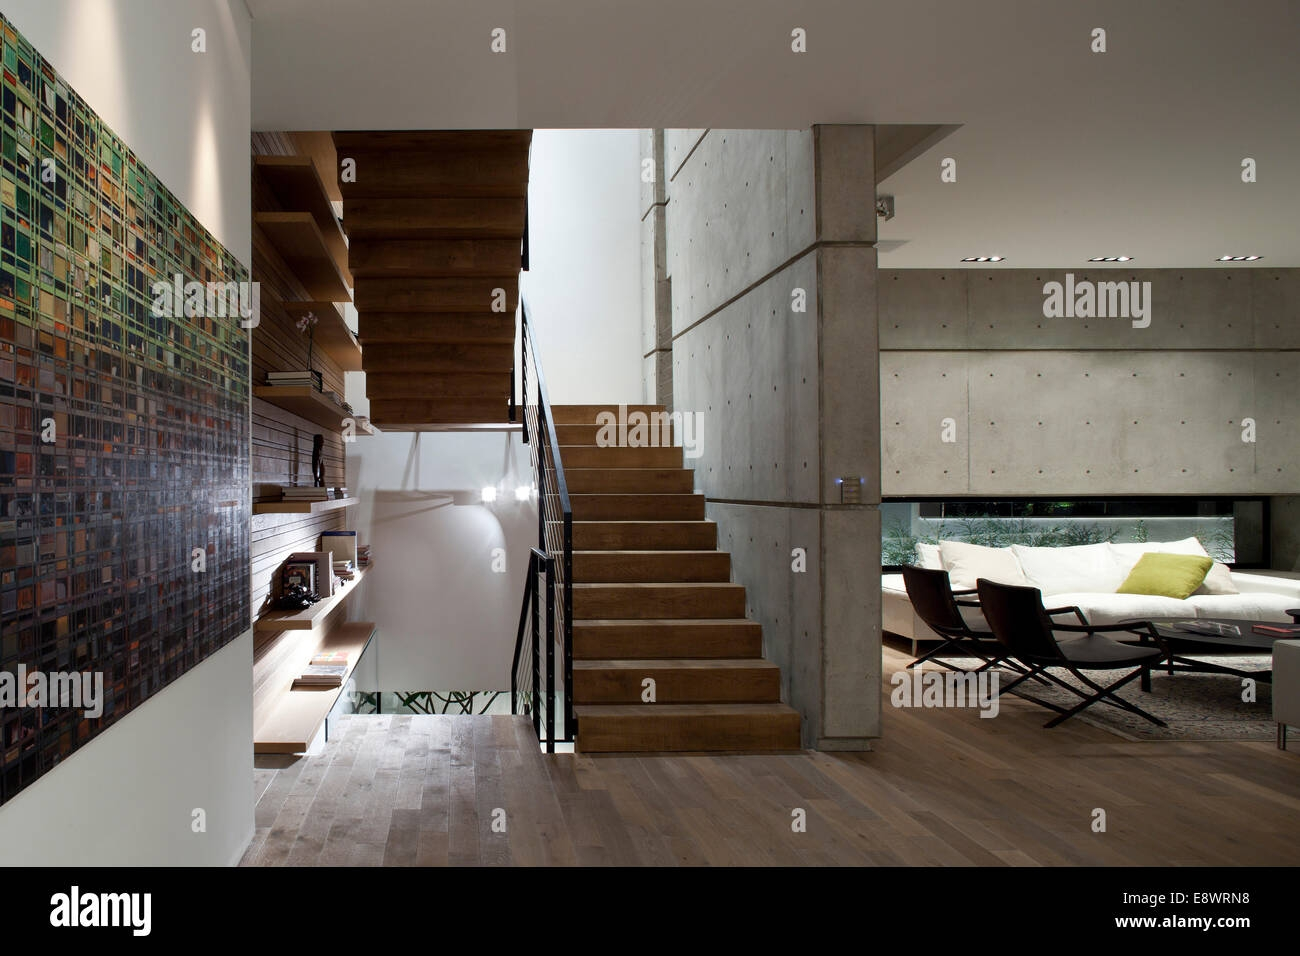 Open Plan Living Room And Staircase In D House Israel Middle | Stairs In Middle Of Room Interior Design | 3 Story Staircase | House | Middle Hallway | Private Home | Mixed Interior